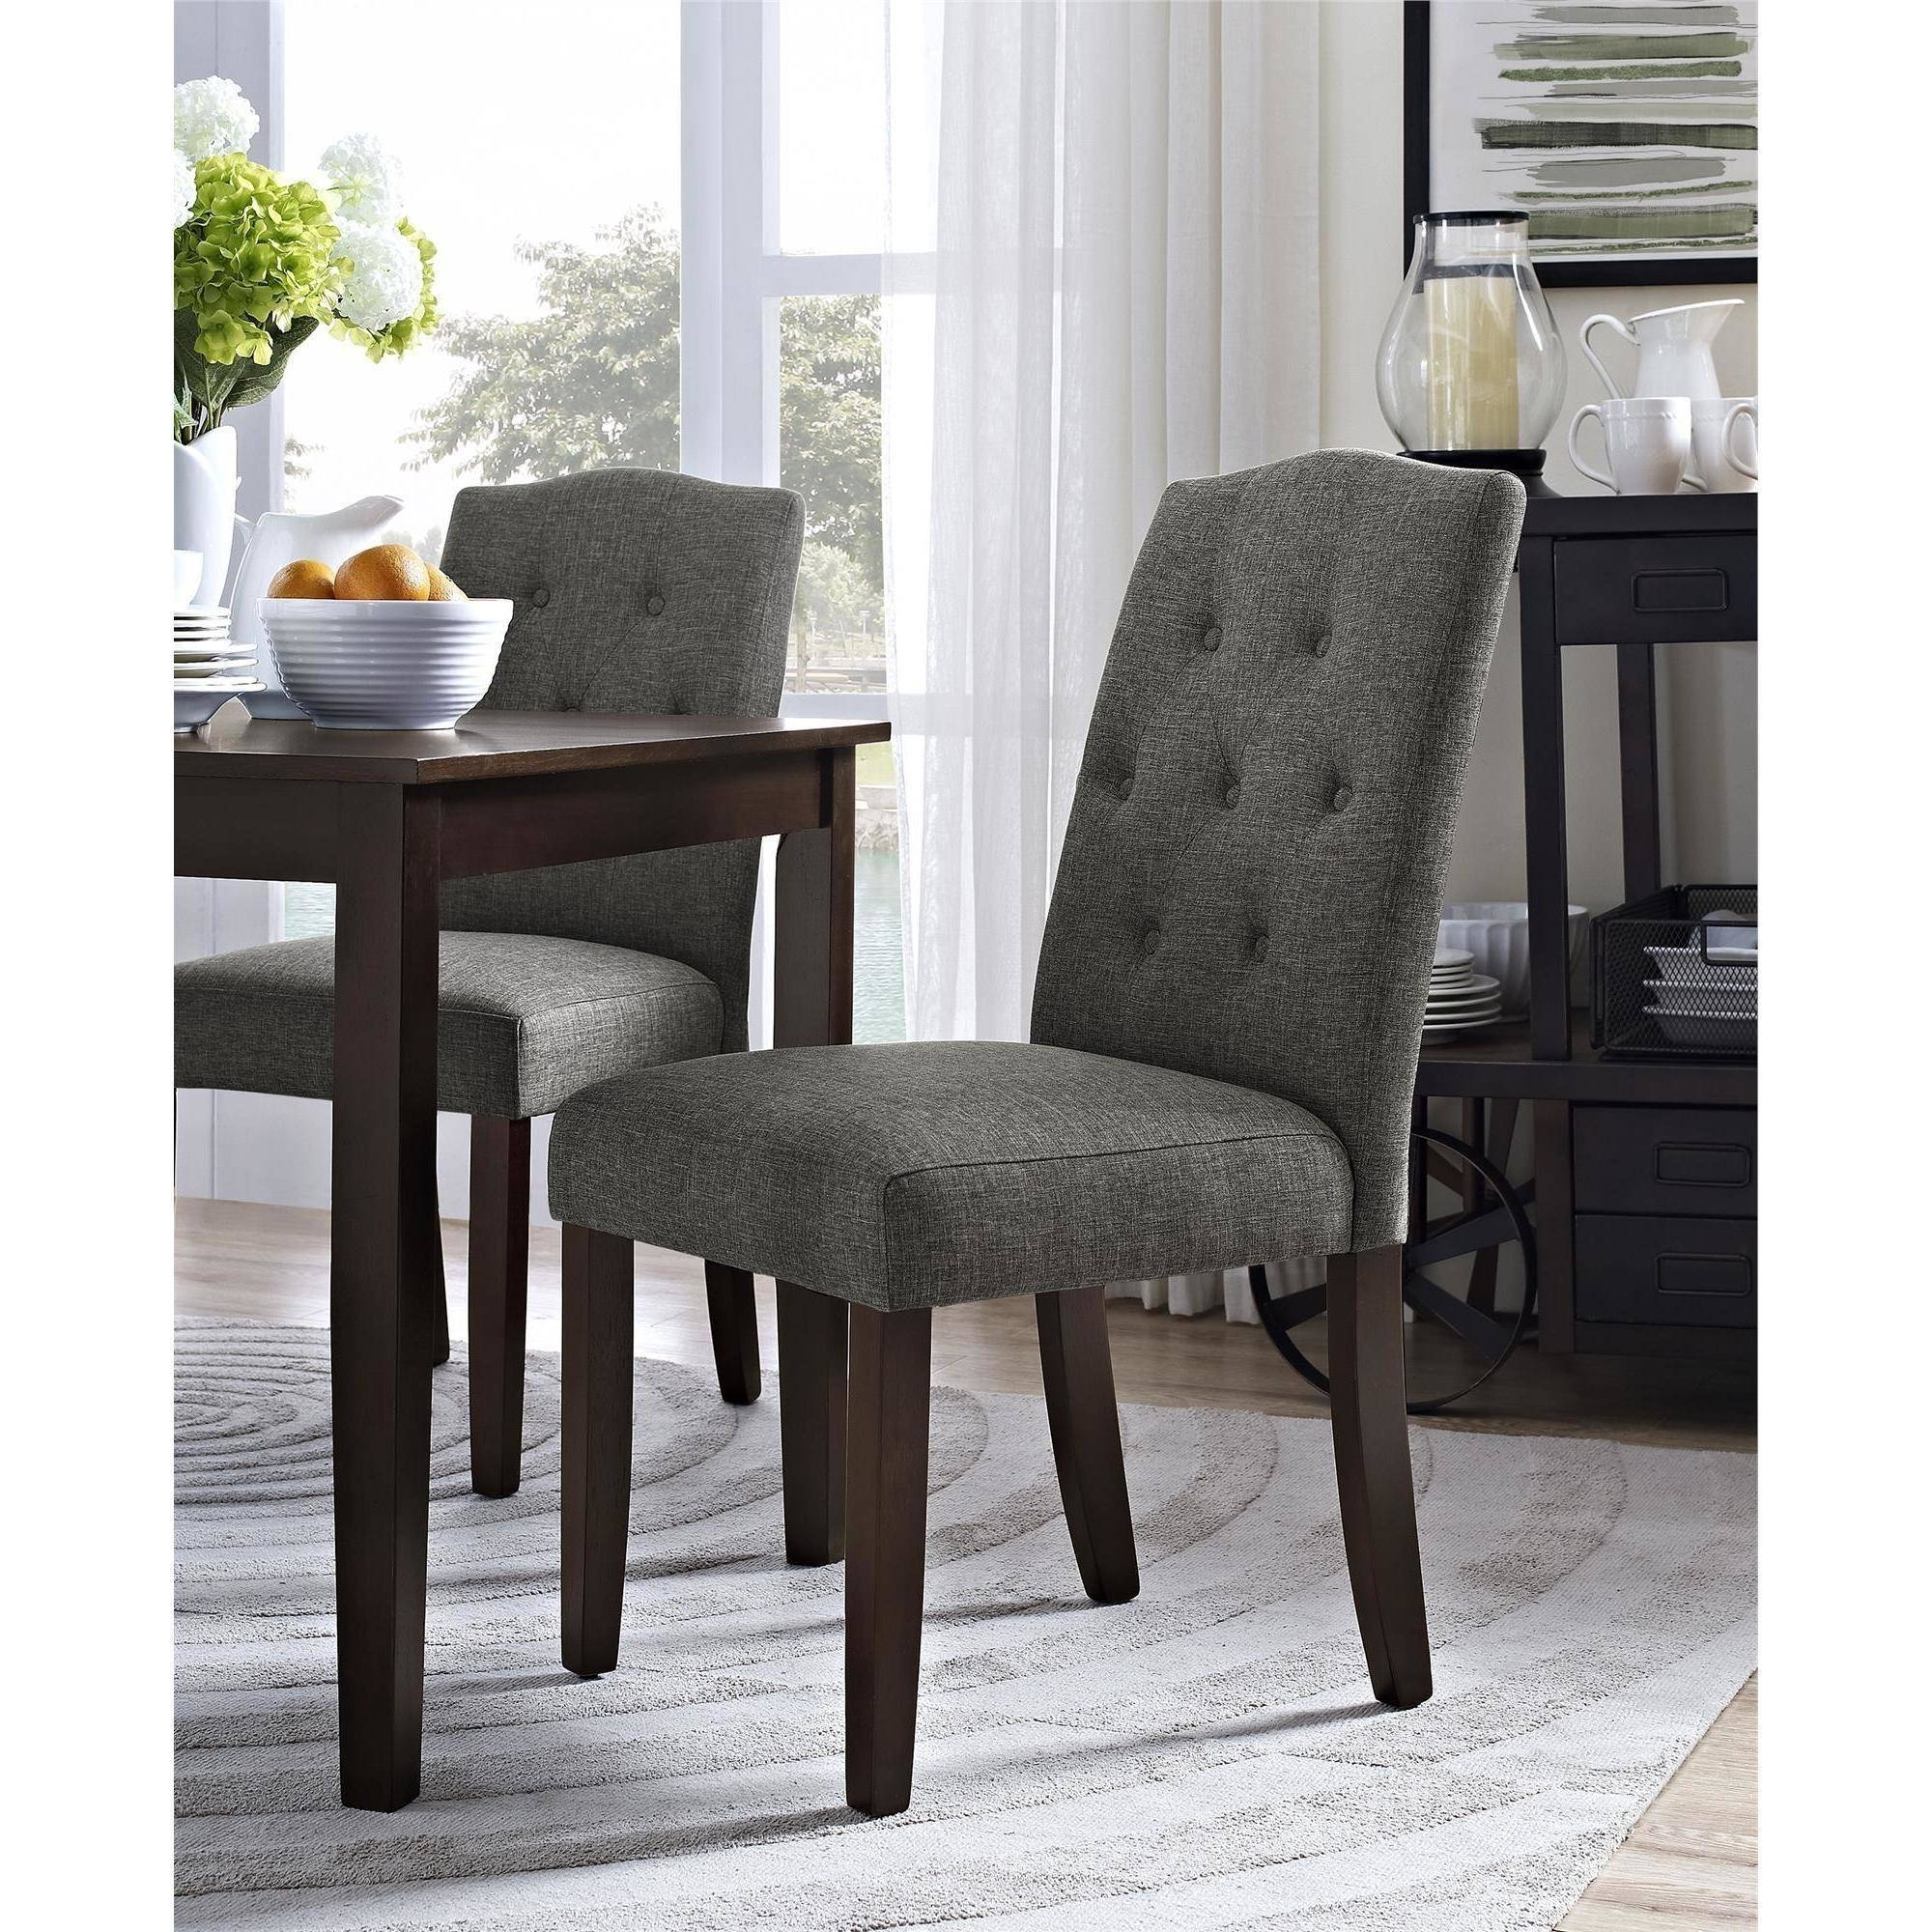 Dining Tables Grey Chairs For Most Recent Better Homes And Gardens Parsons Tufted Dining Chair, Multiple (View 7 of 25)